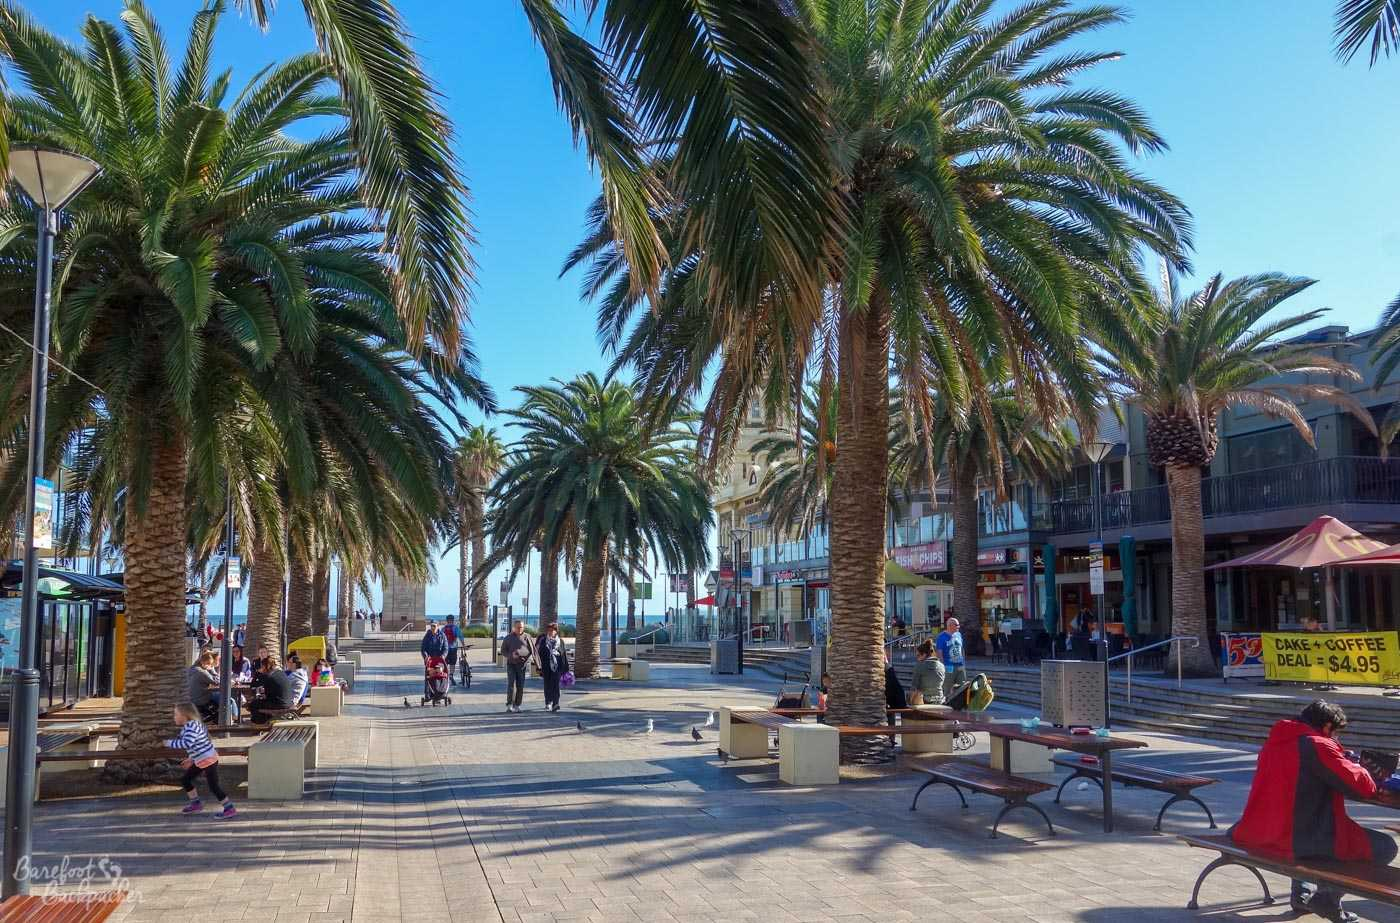 The centre of Glenelg, the road that runs down to the seafront. It's wide, lined with palm trees and cafés, and pedestrianised.